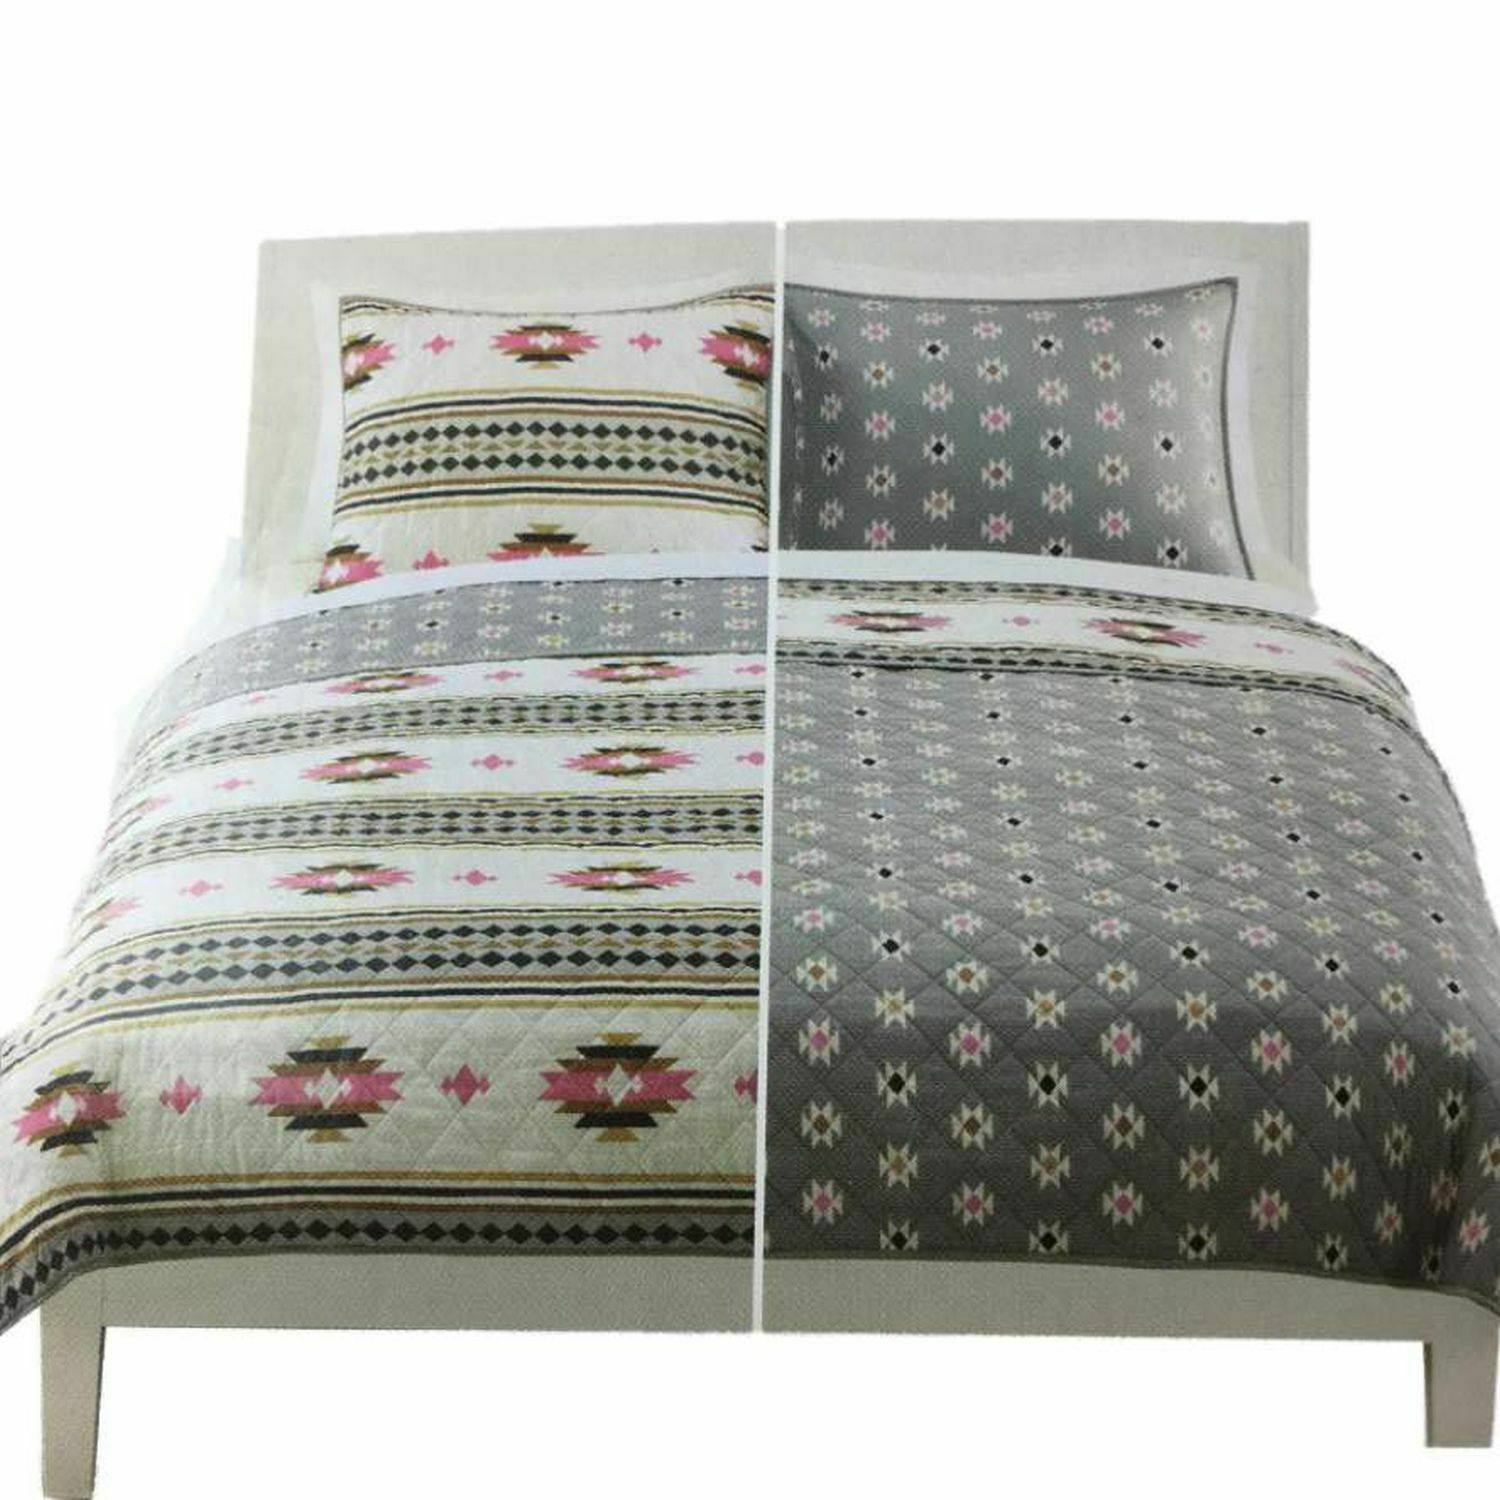 Reversible Quilt Sham Set Aztec Geometric Quilted Twin Bed Cover 2 Pc For Sale Online